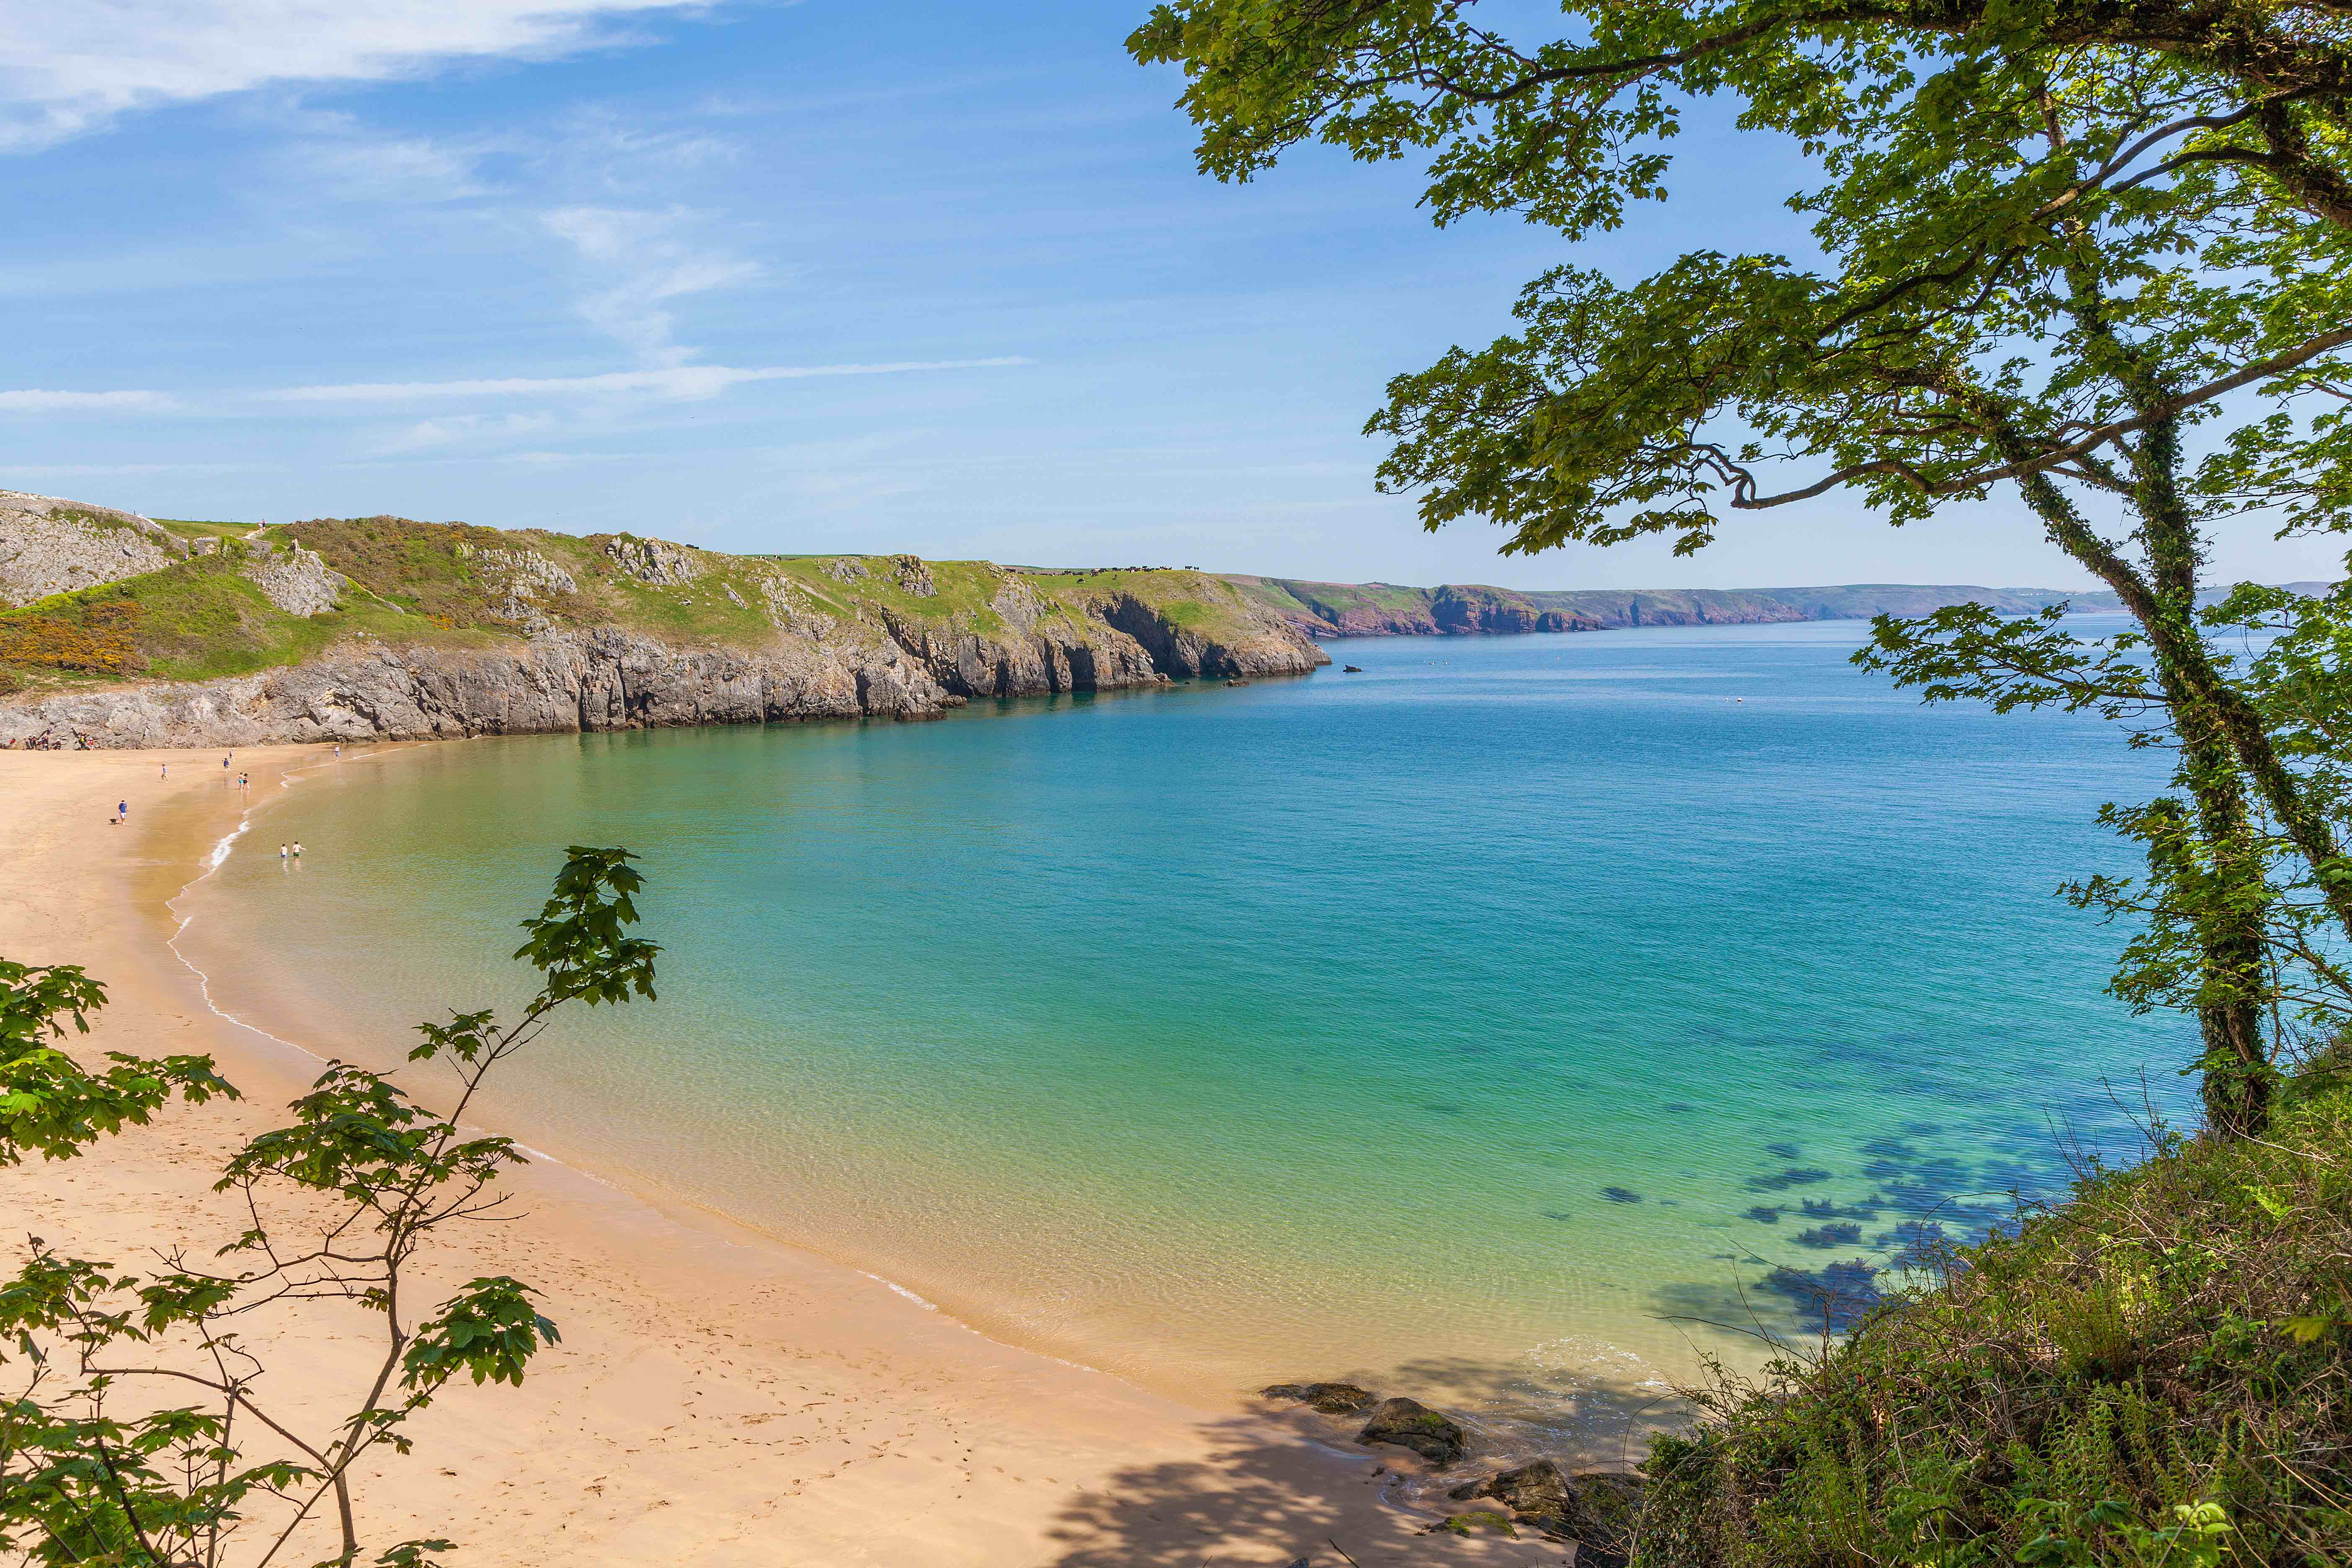 The most beautiful beach in the UK? Barafundle Bay in Pembrokeshire, Wales.